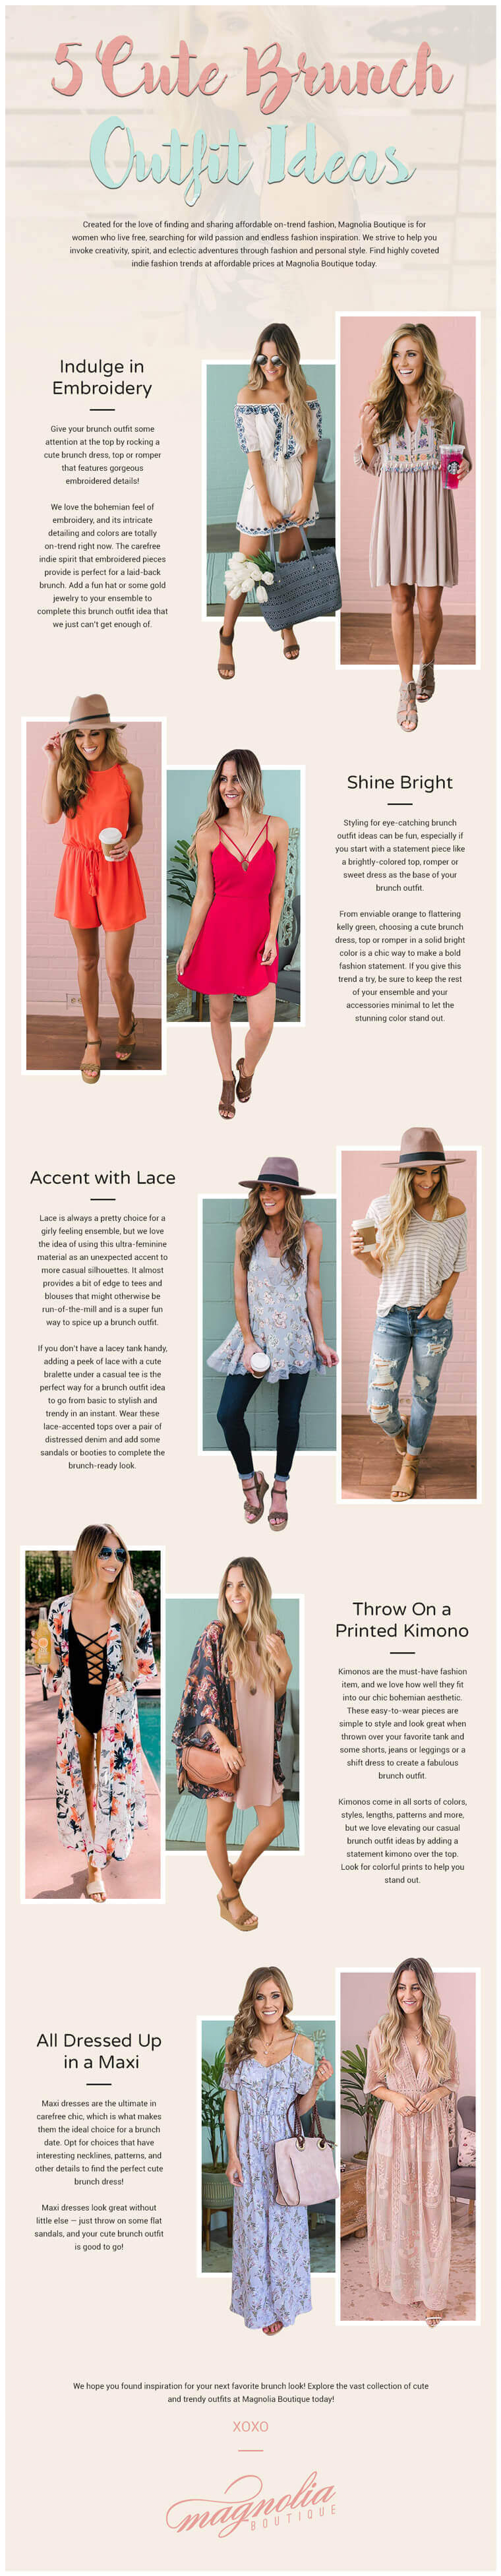 5 Cute Brunch Outfit Ideas infographic